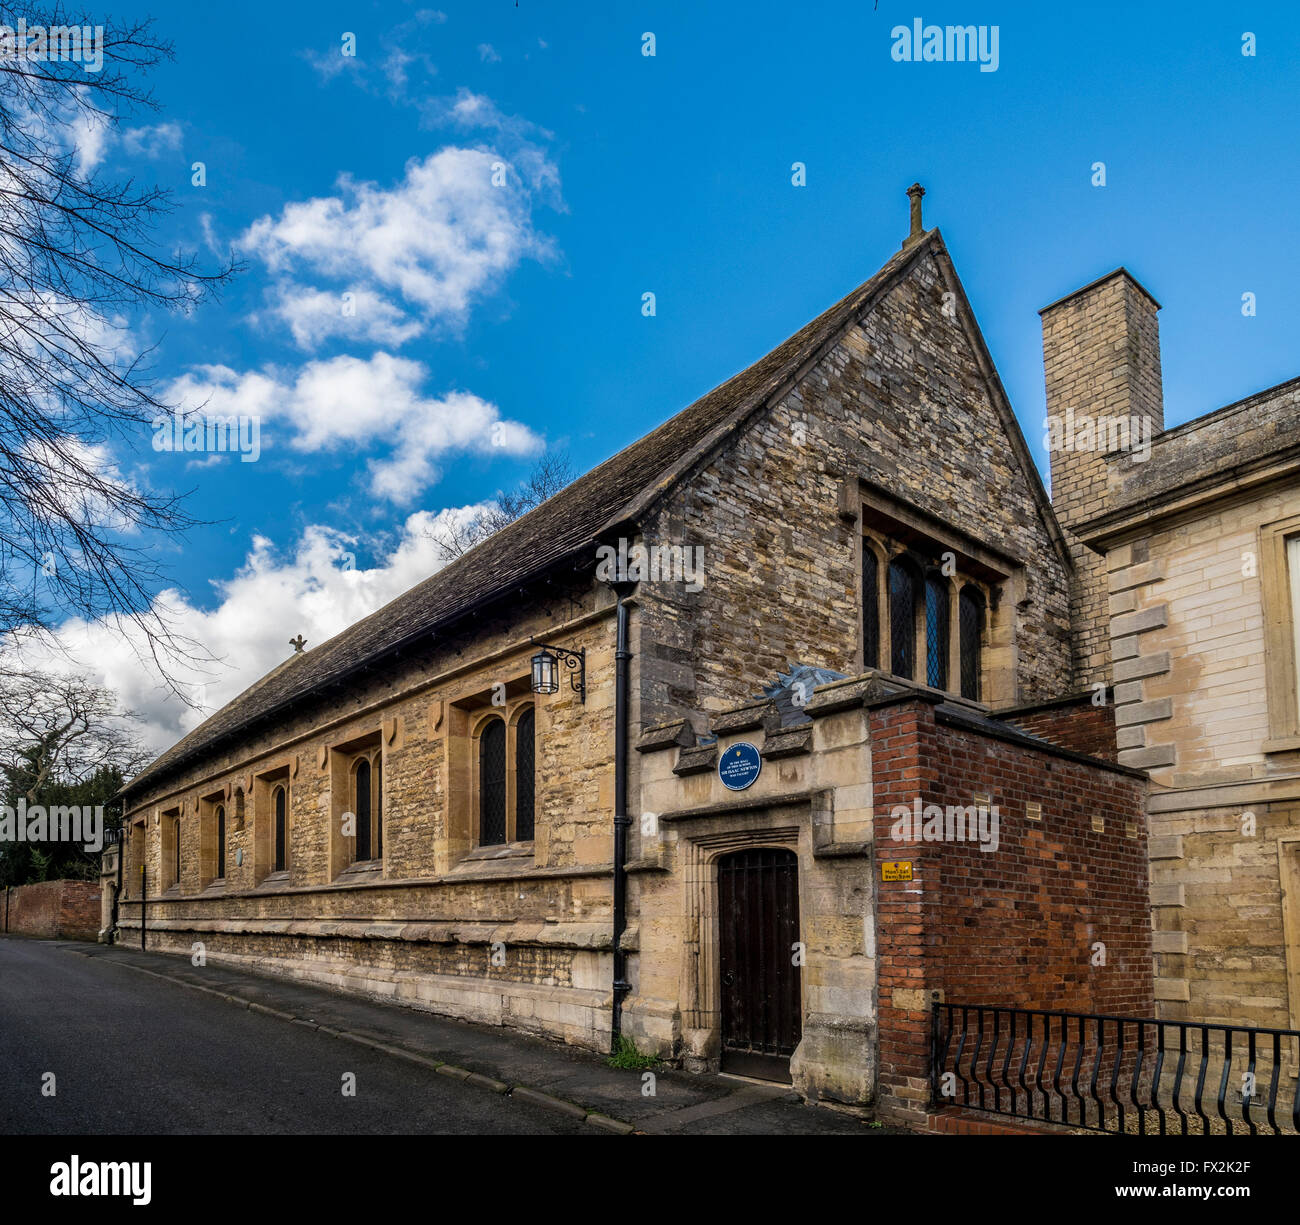 The Original King's School building in Grantham, Lincolnshire, UK, where Sir Isaac Newton was taught. - Stock Image